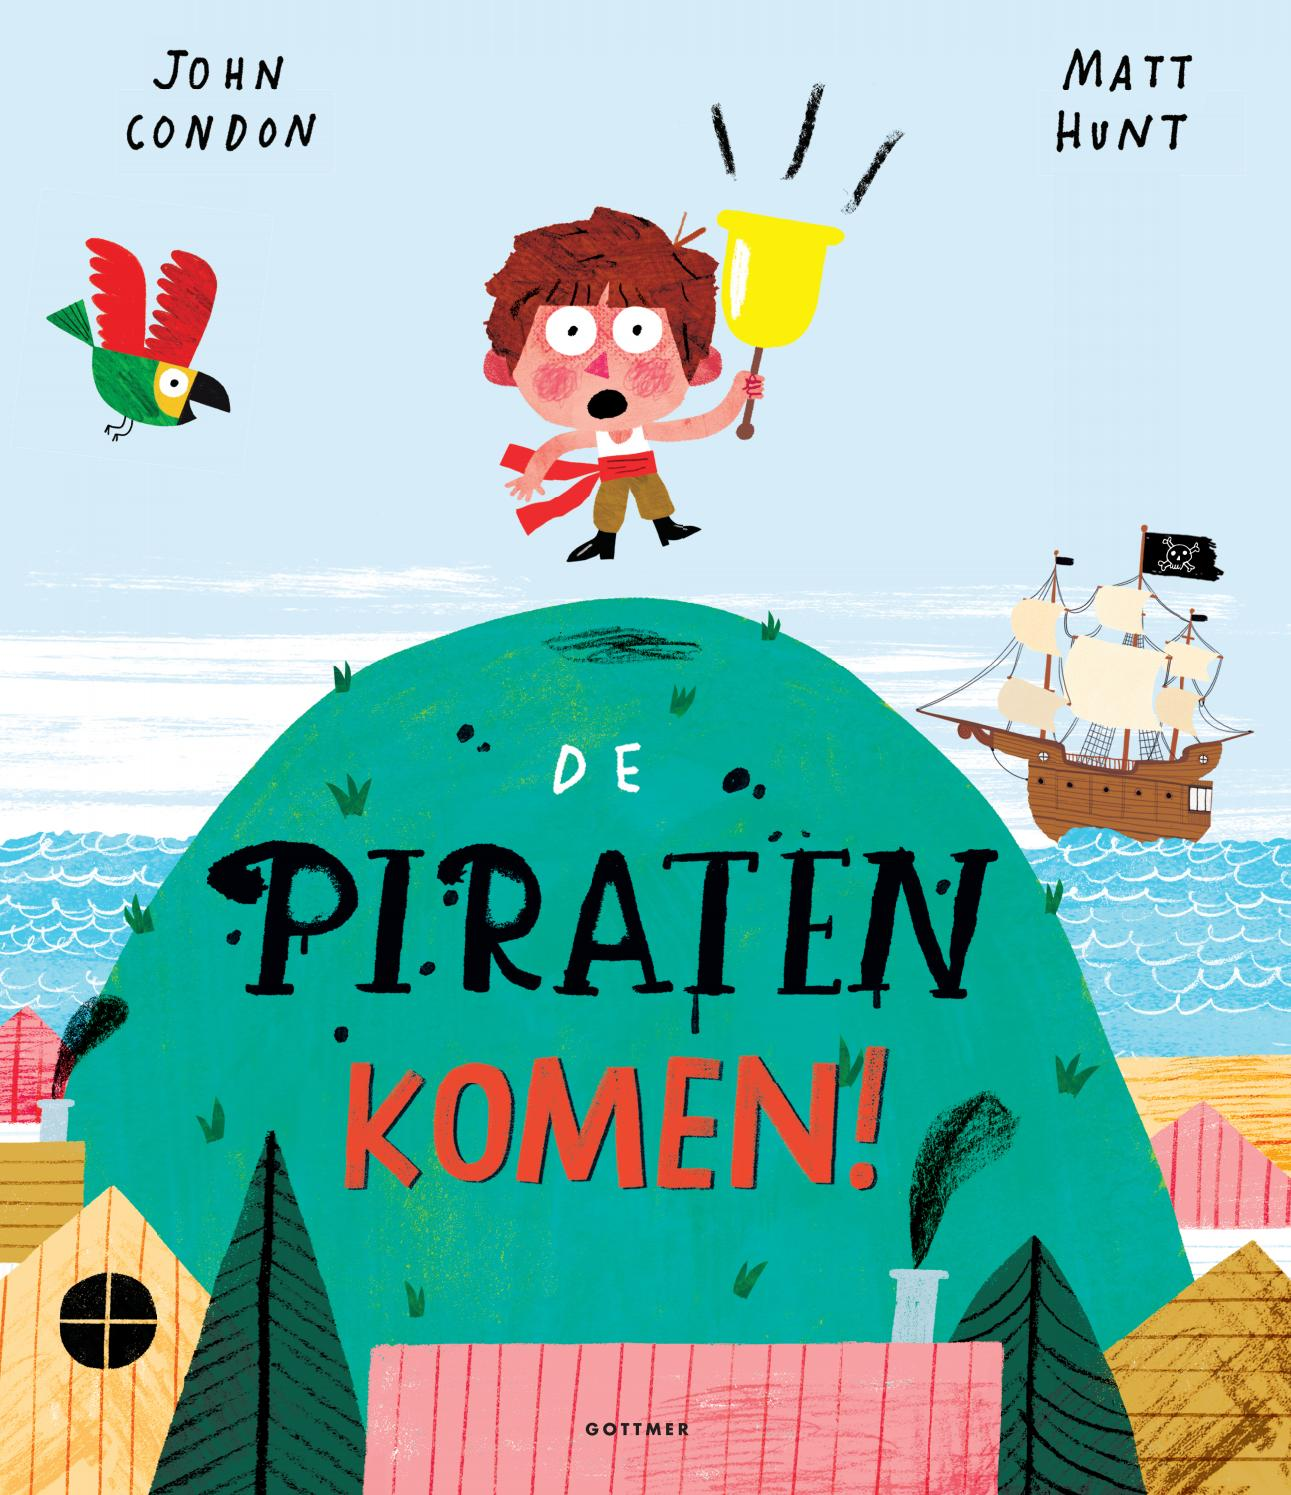 De piraten komen! - John Condon & Matt Hunt (ill ...